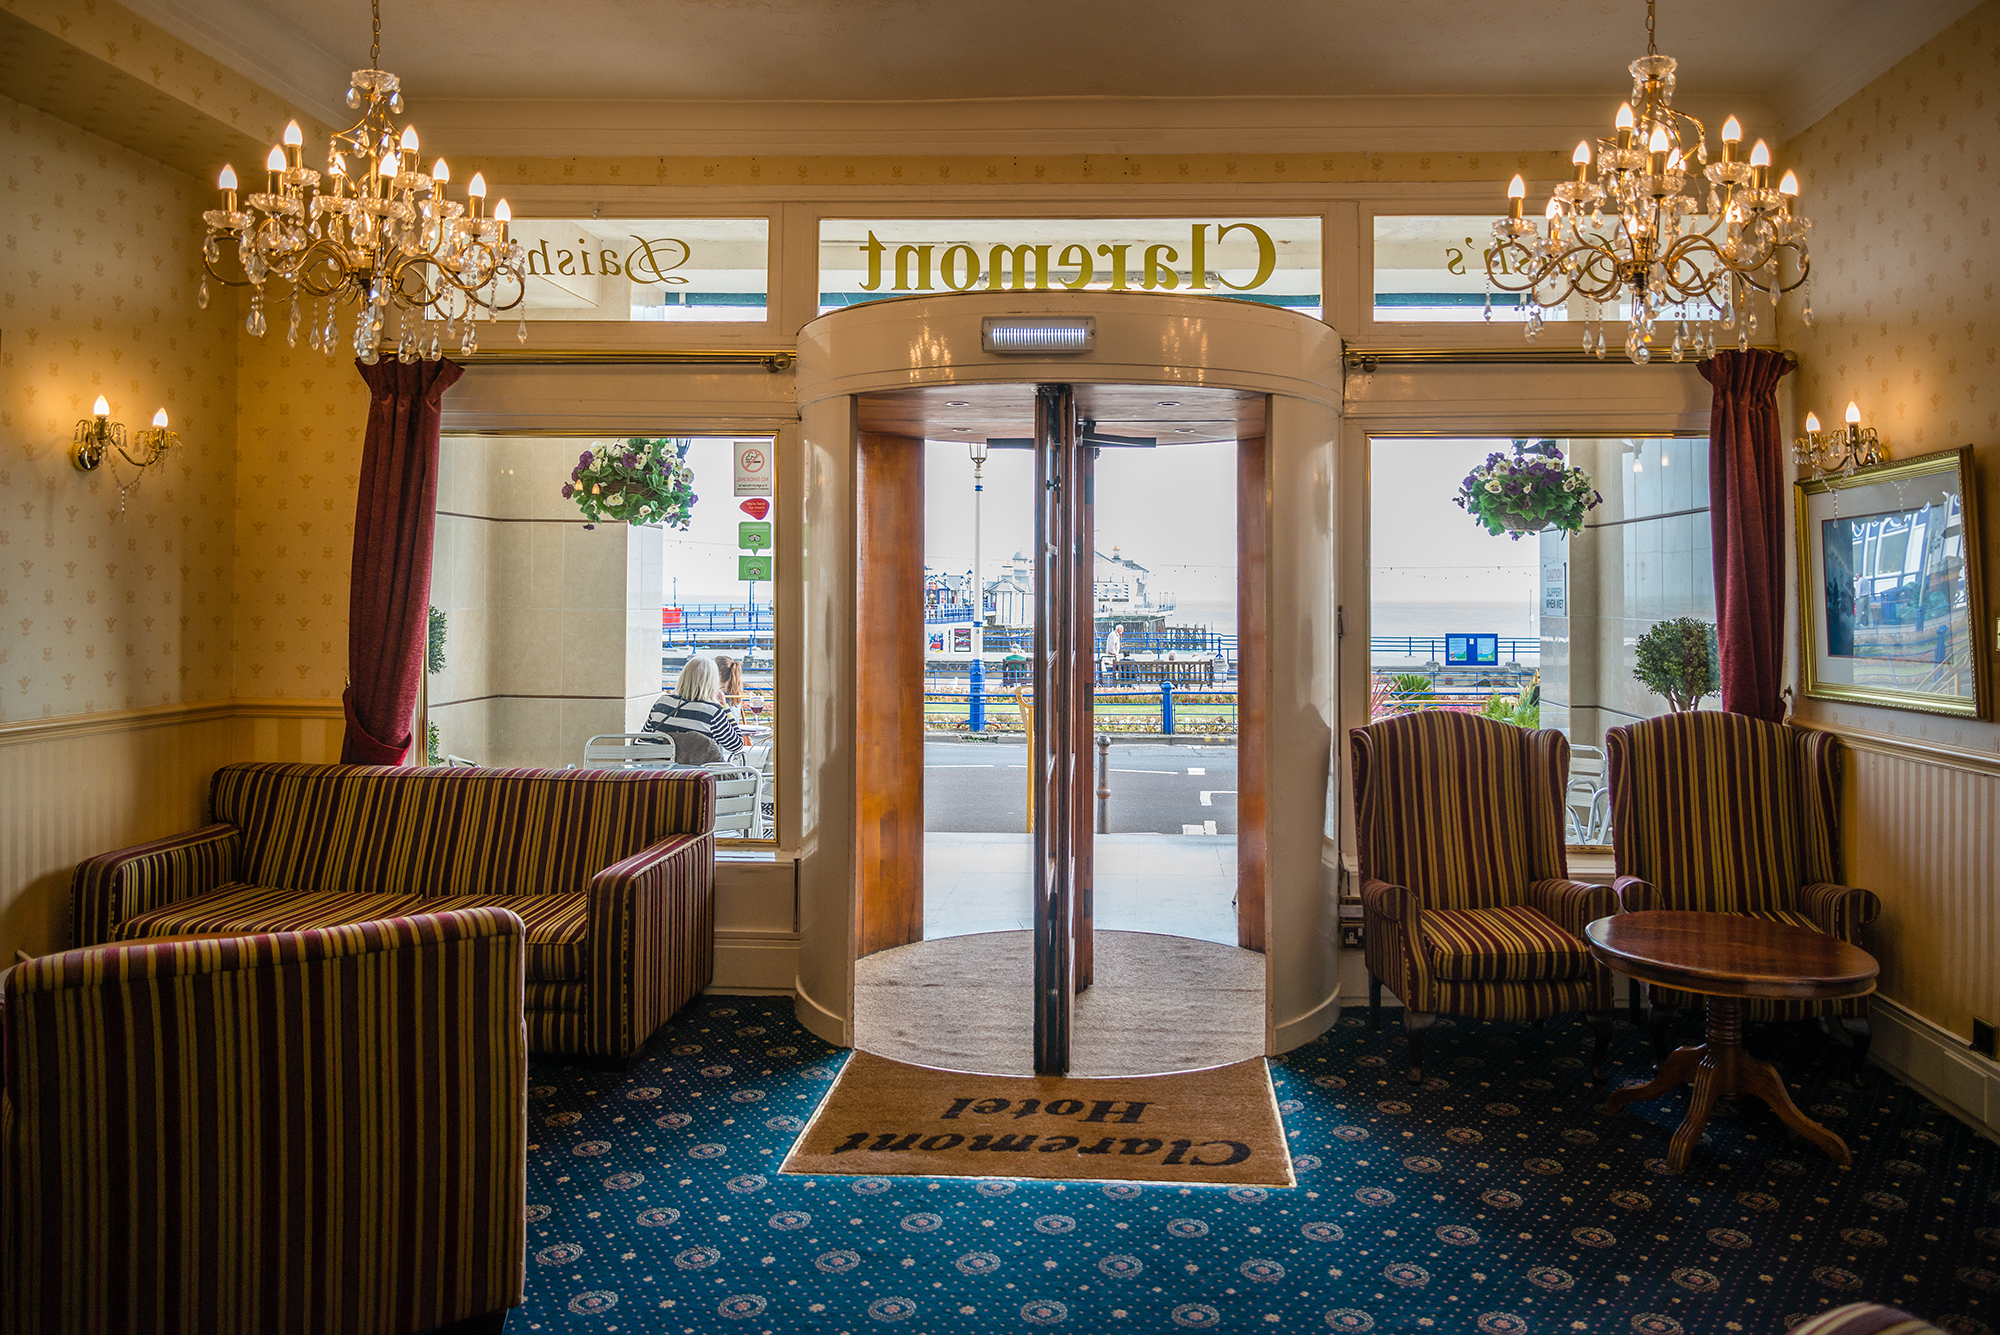 Claremont Hotel - Eastbourne, East Sussex  BN21 3YL - 01323 731417   ShowMeLocal.com